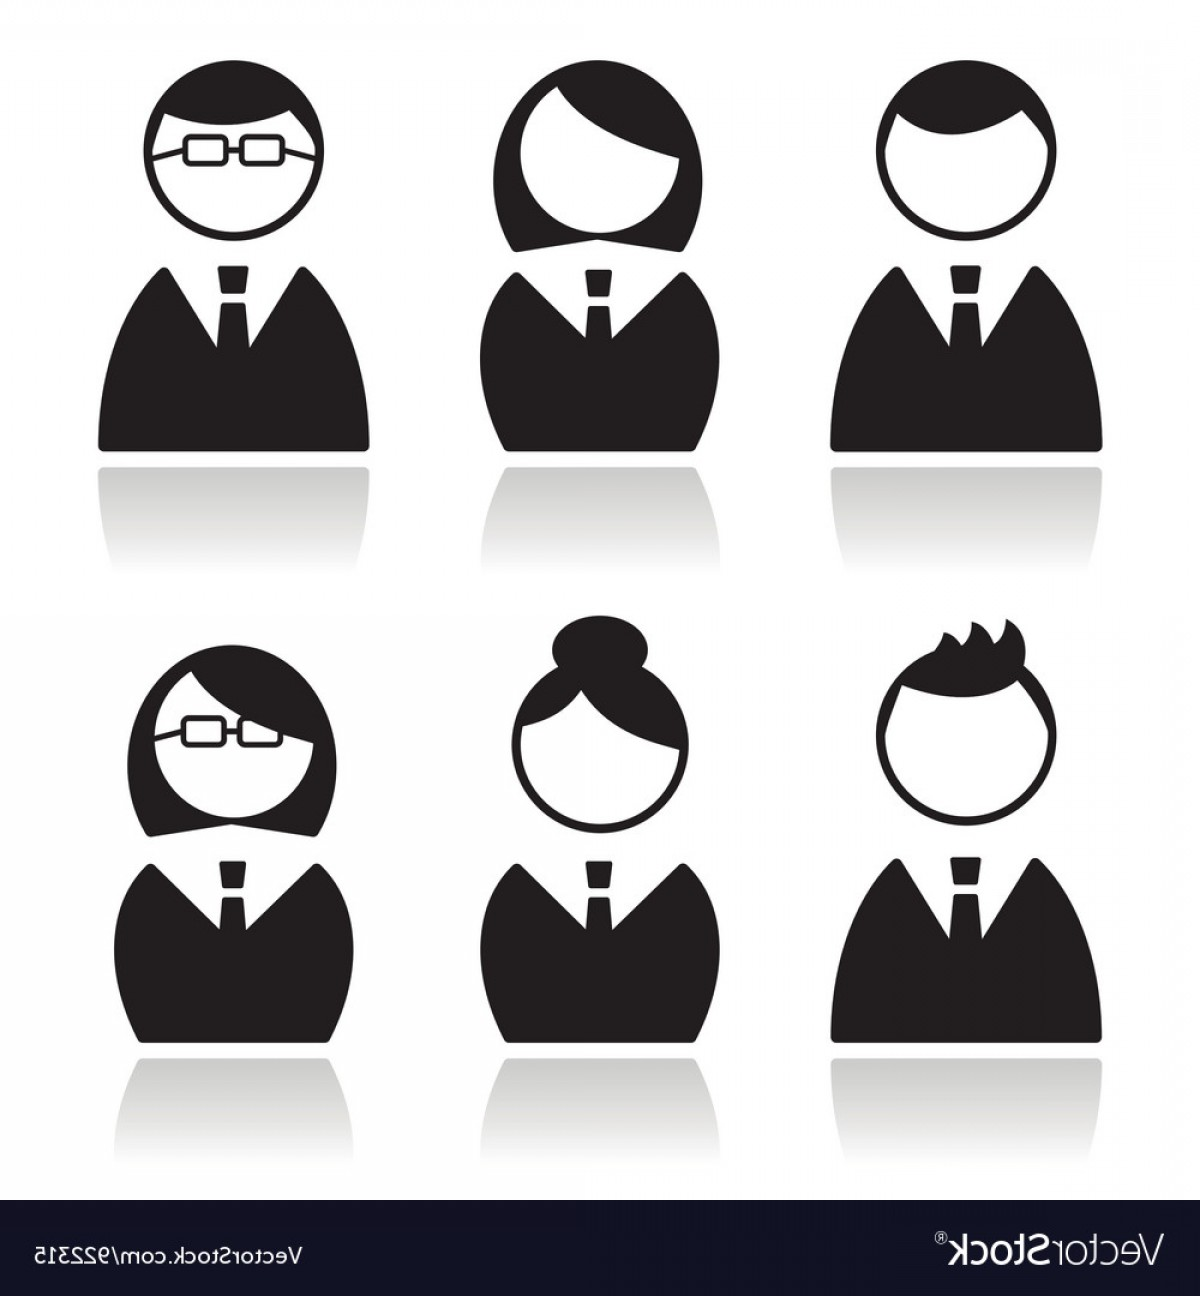 Free Vector Business People Icon: Business People Icons Set Avatars Vector